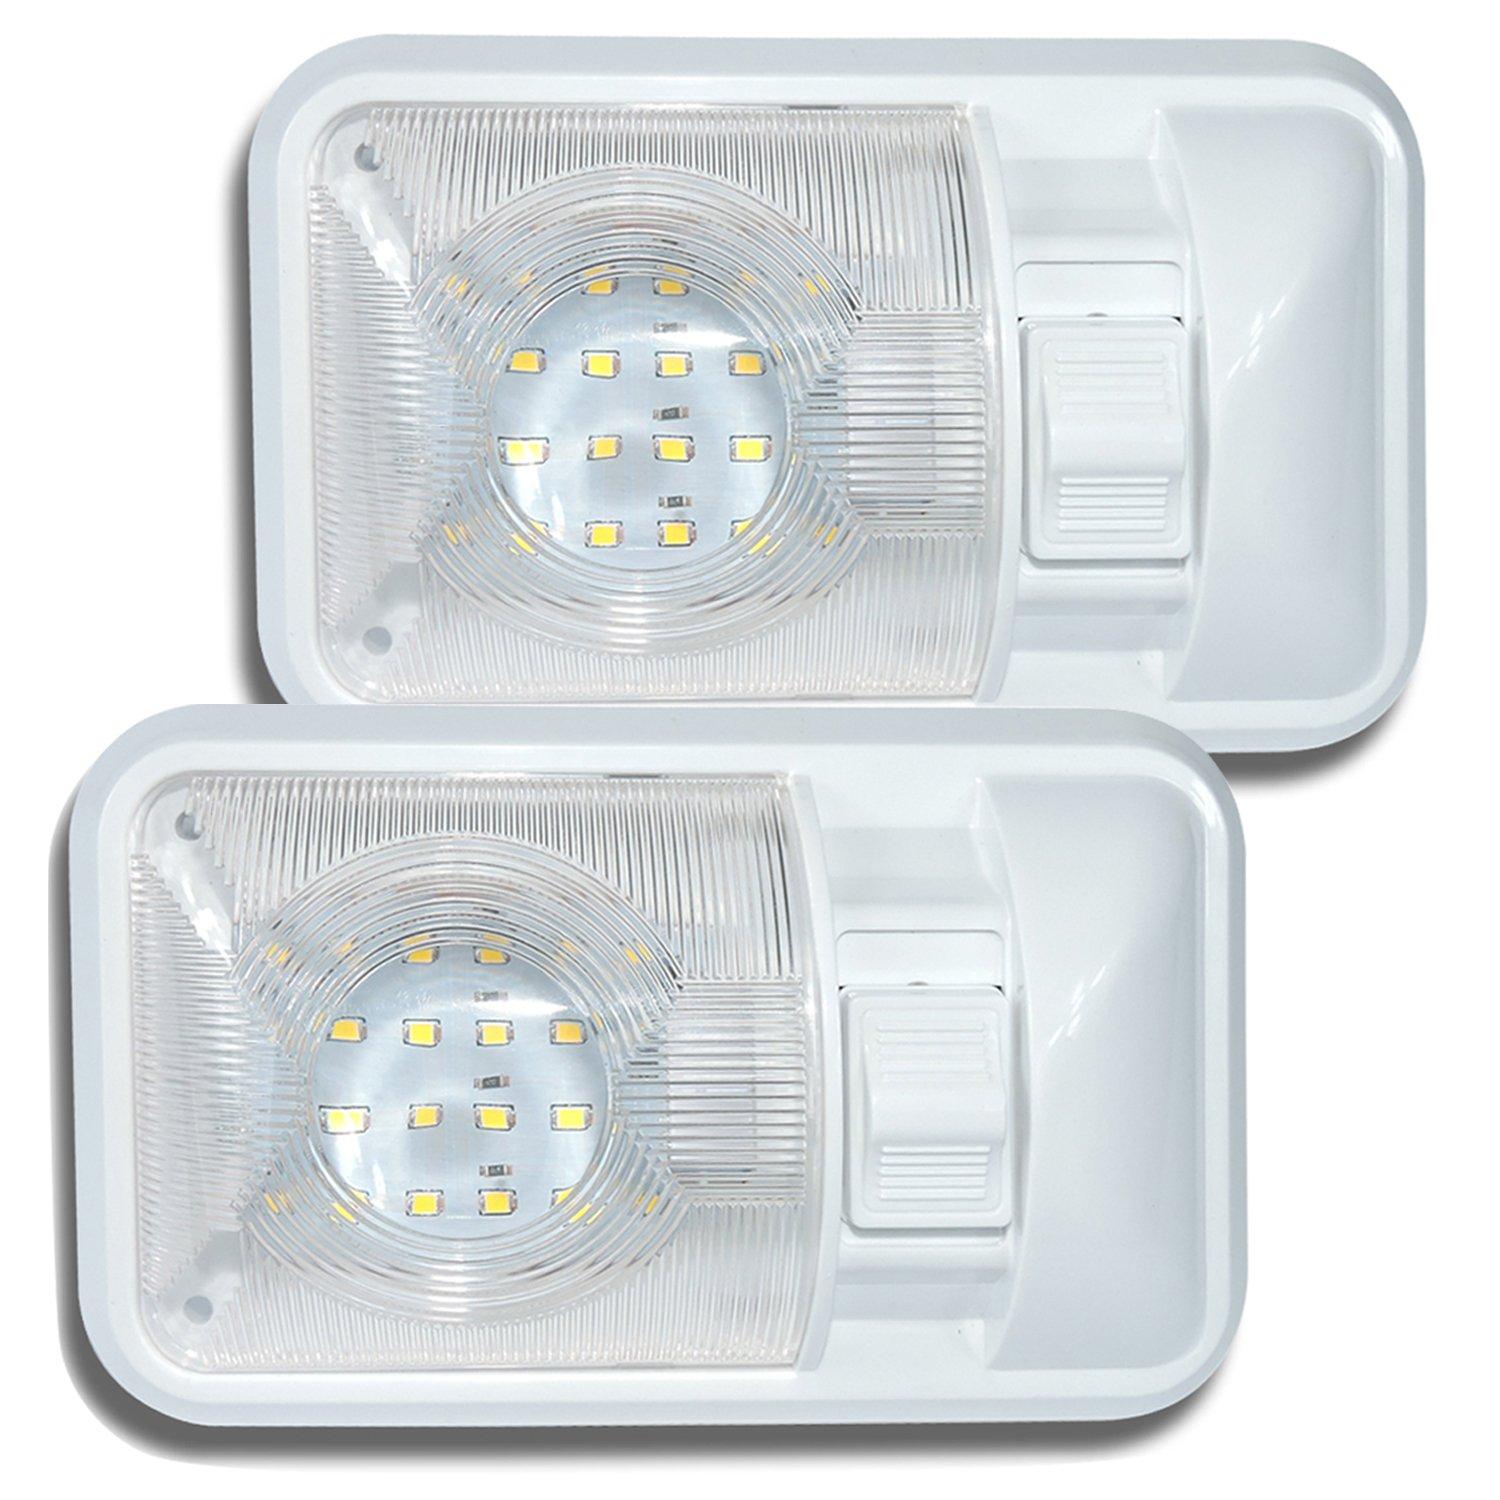 Interior Lighting Rv Parts Accessories Automotive Dome Lamp Dimmer By Lm358 Leisure Led 2 Pack 12v Ceiling Light For Trailer Camper